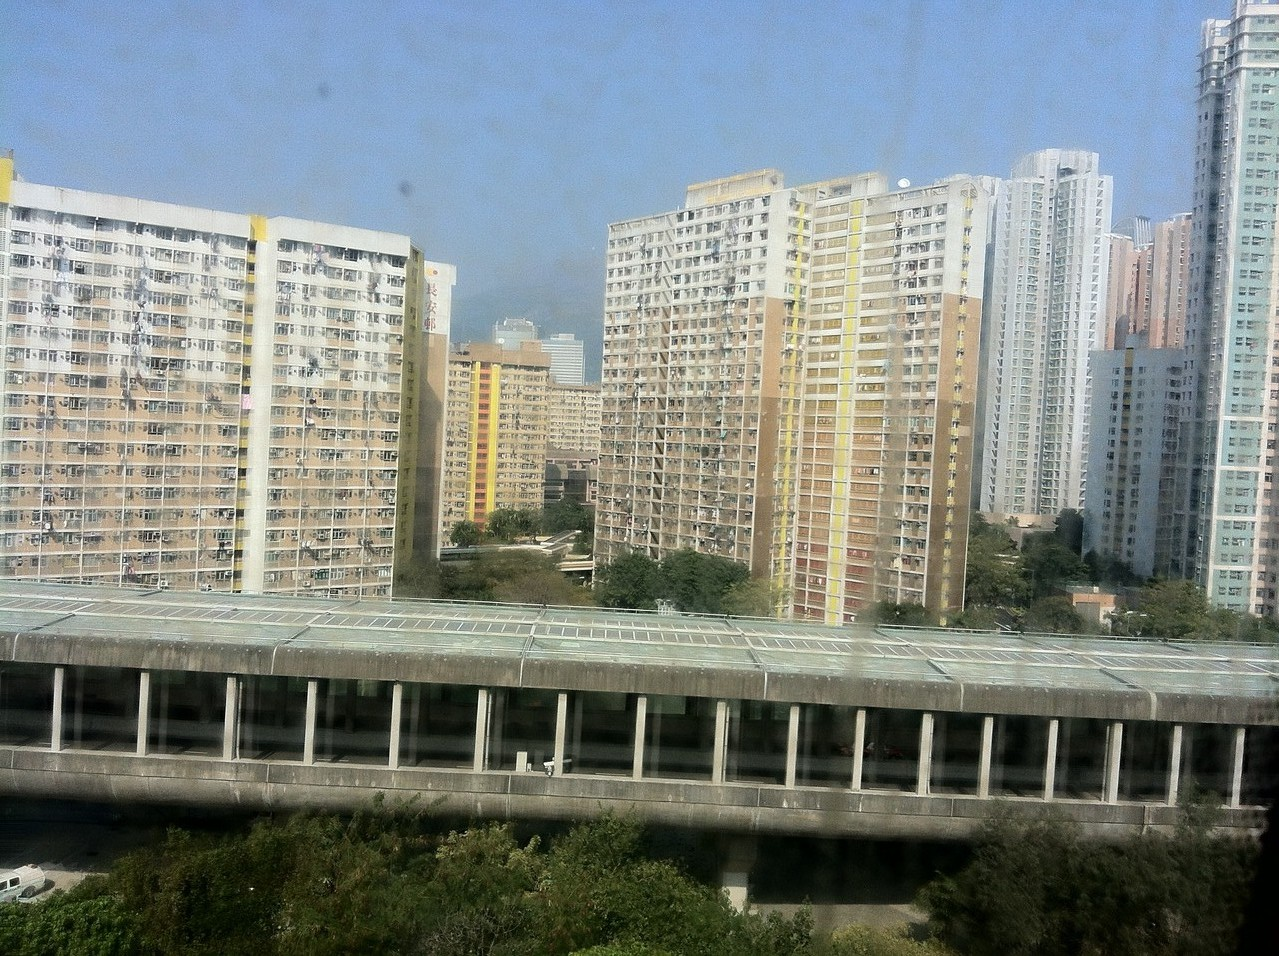 The train whizzes us by countless high rises - looks like it's quite tough to live there ... — in Hong Kong, Hong Kong.